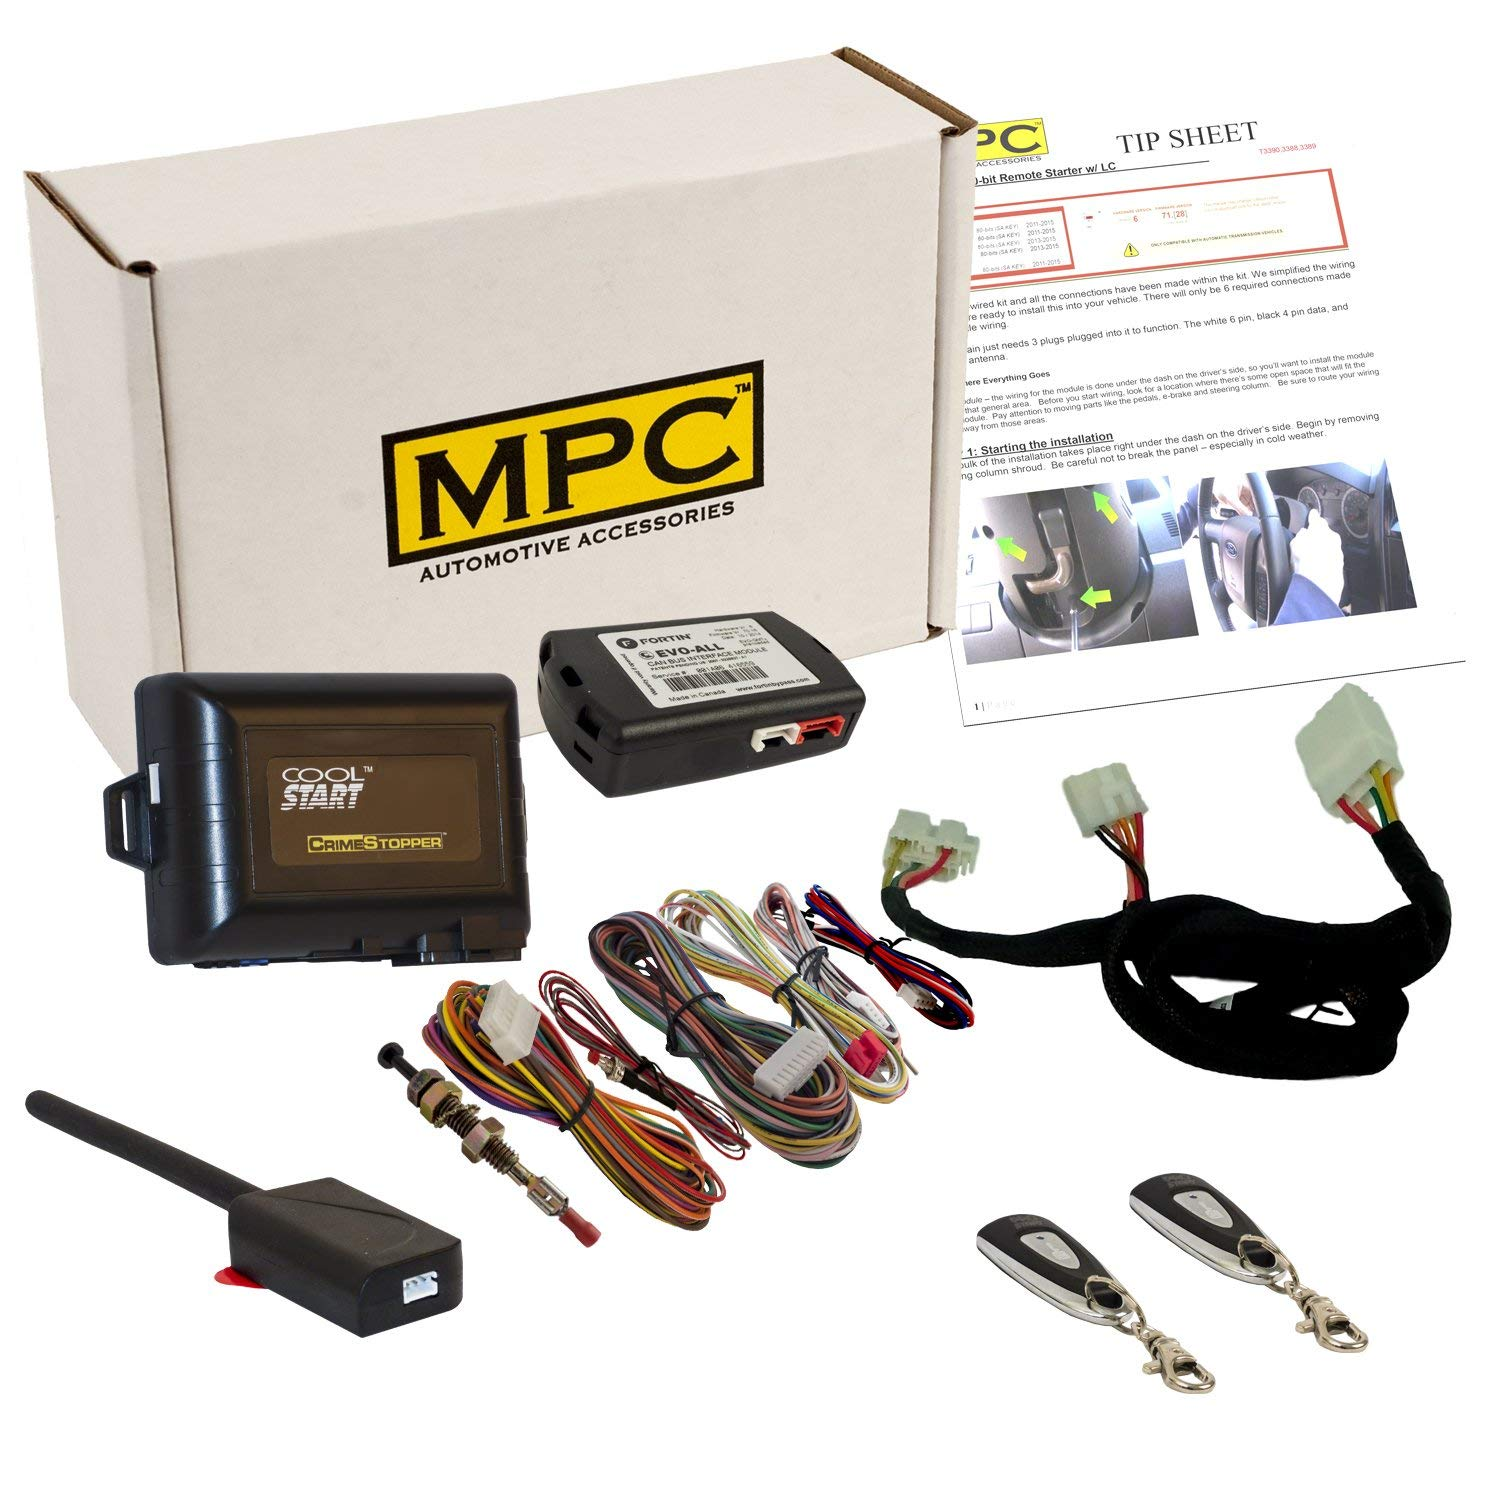 cheap plug and play remote start, find plug and play remote startget quotations · mpc complete 1 button remote start kit with t harness for 2011 2013 kia